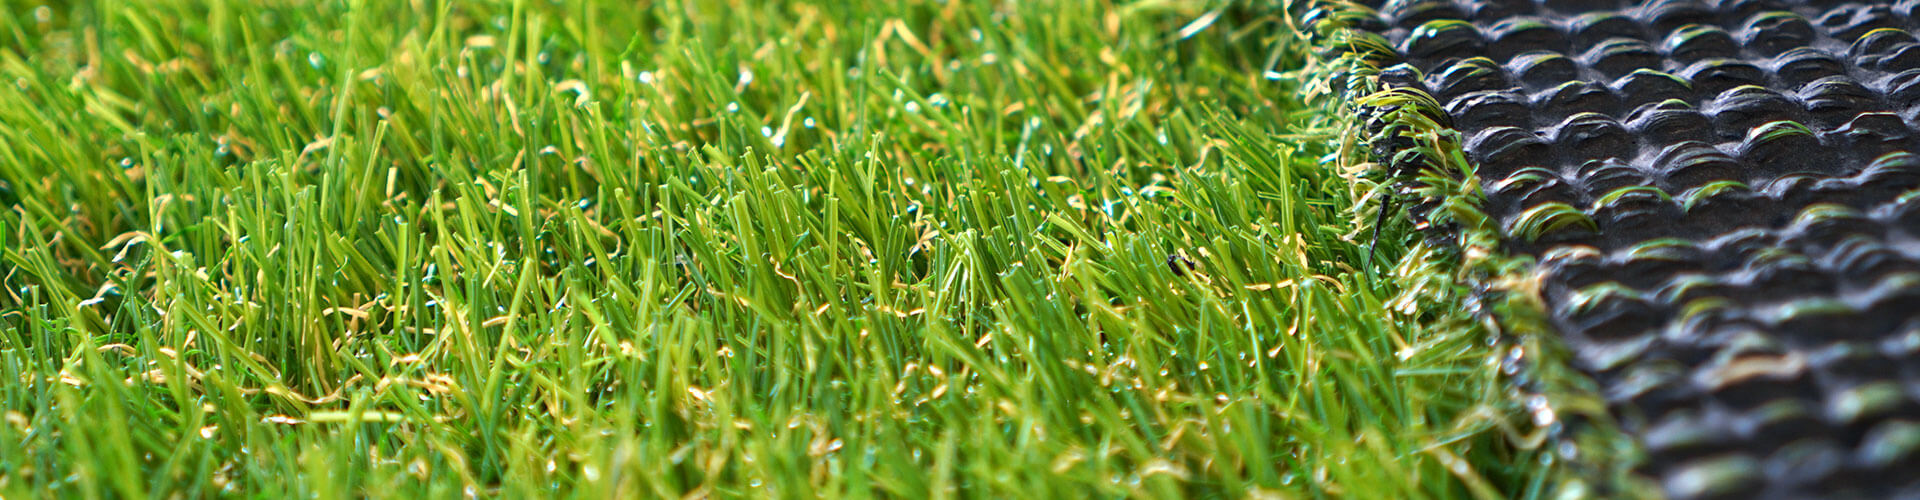 Artificial grass close-up.